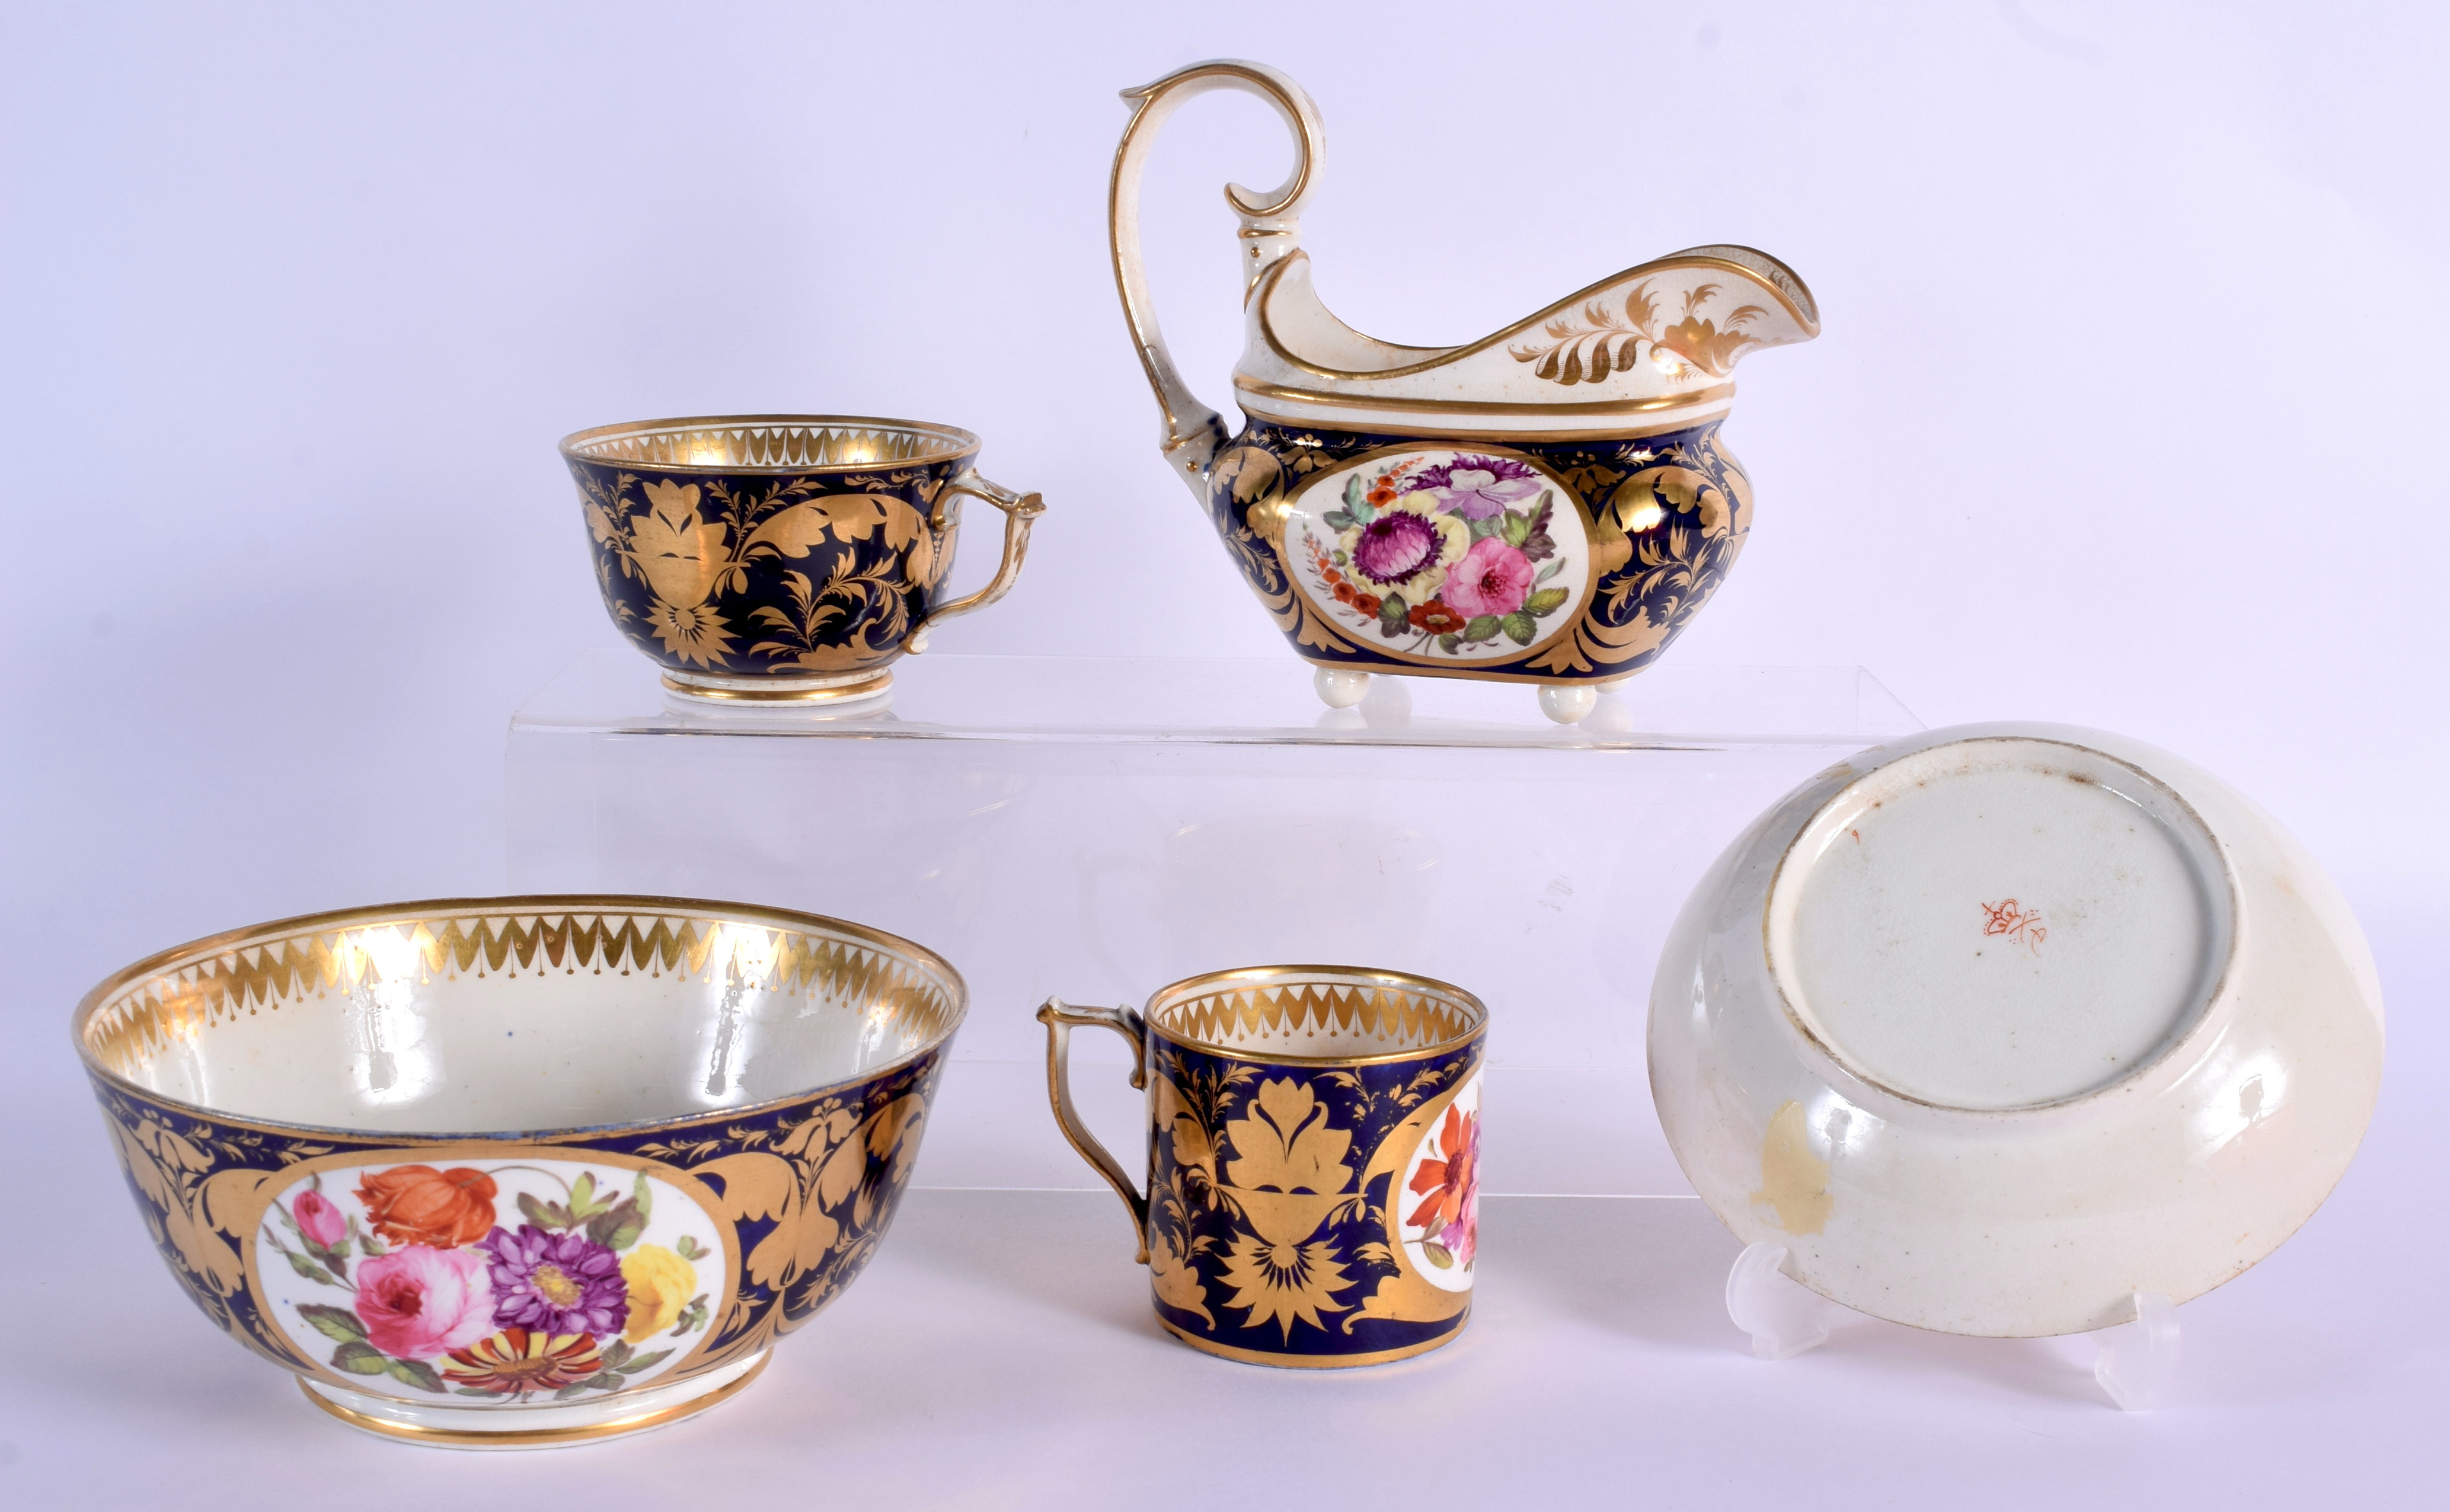 AN EARLY 19TH DERBY PORCELAIN TEAWARES including a trio, cream jug and slop bowl. Largest 12 cm diam - Image 2 of 3